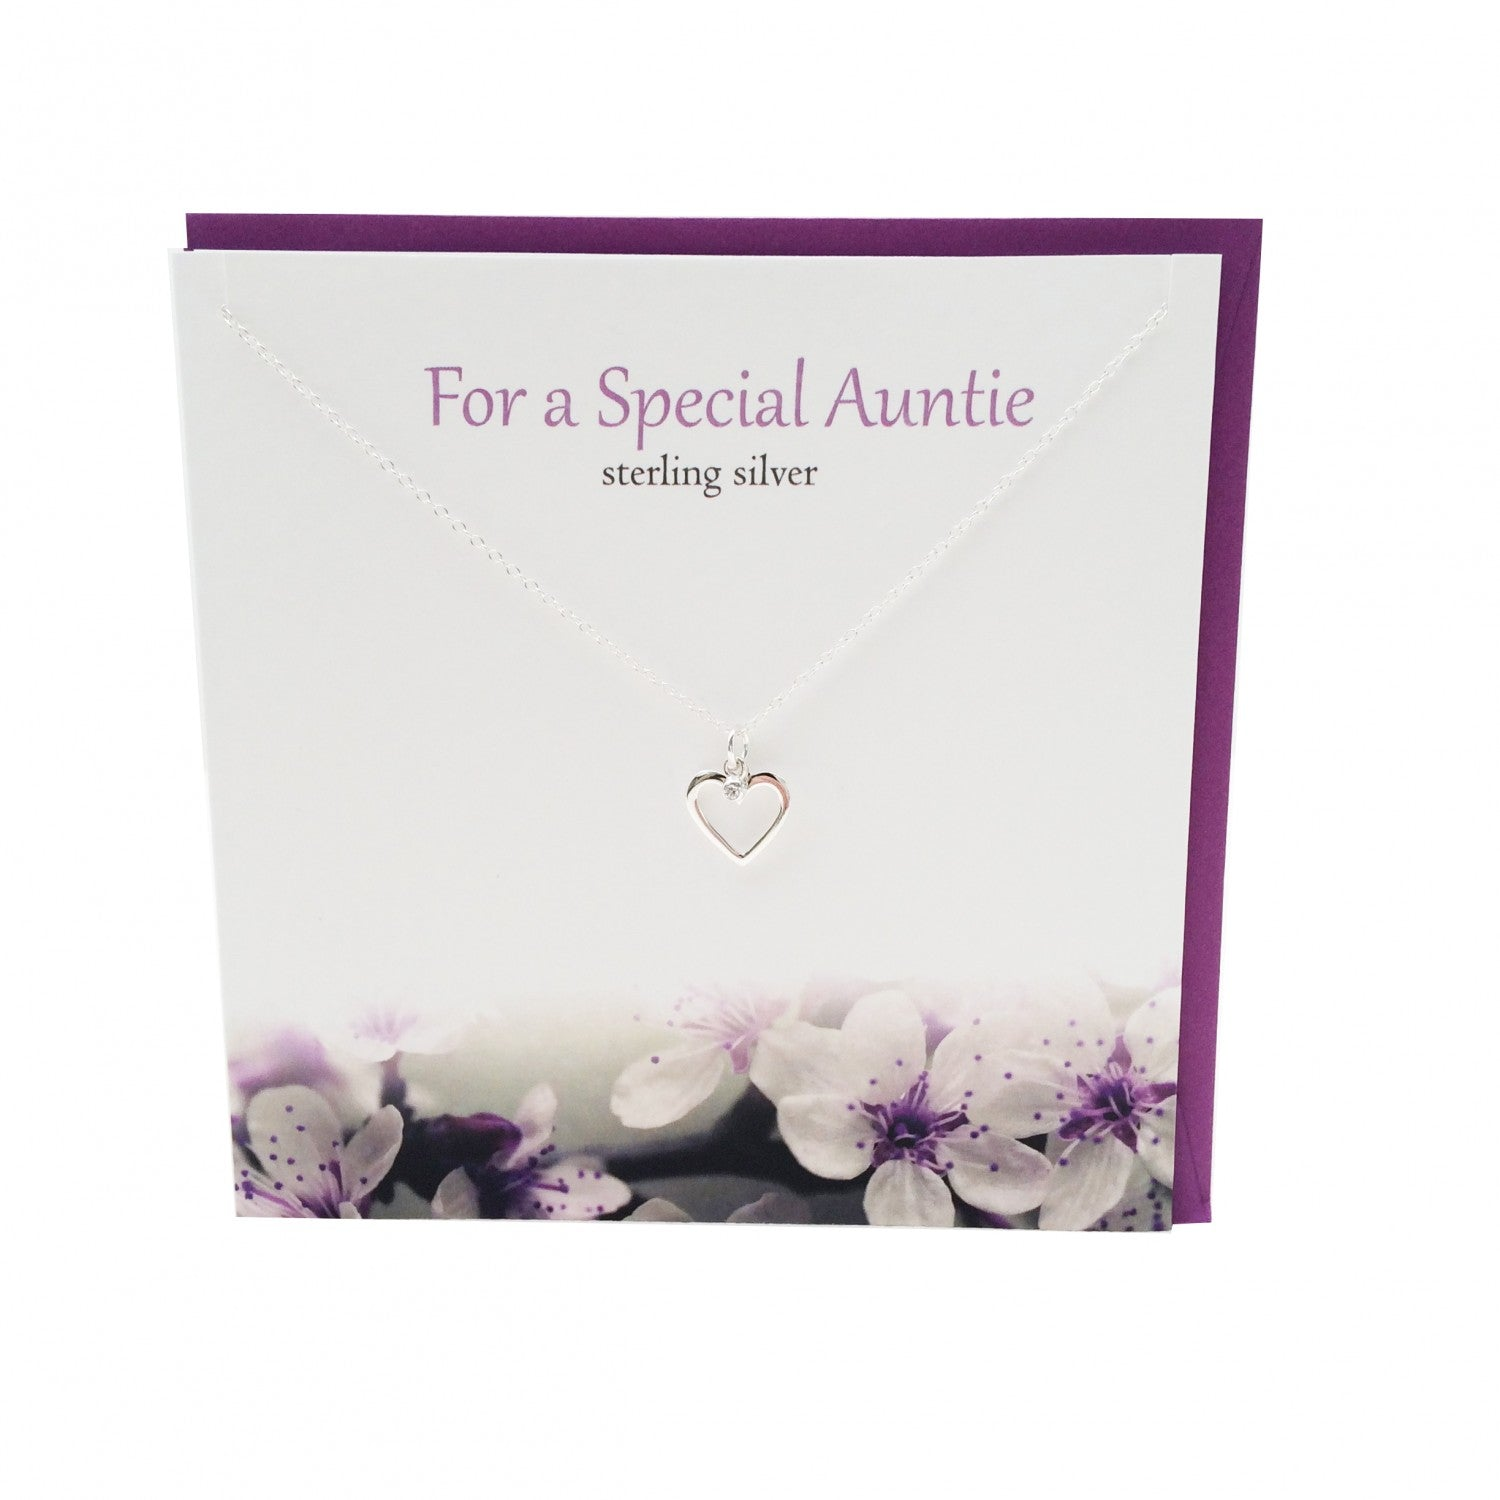 Special Auntie Sterling Silver Pendant